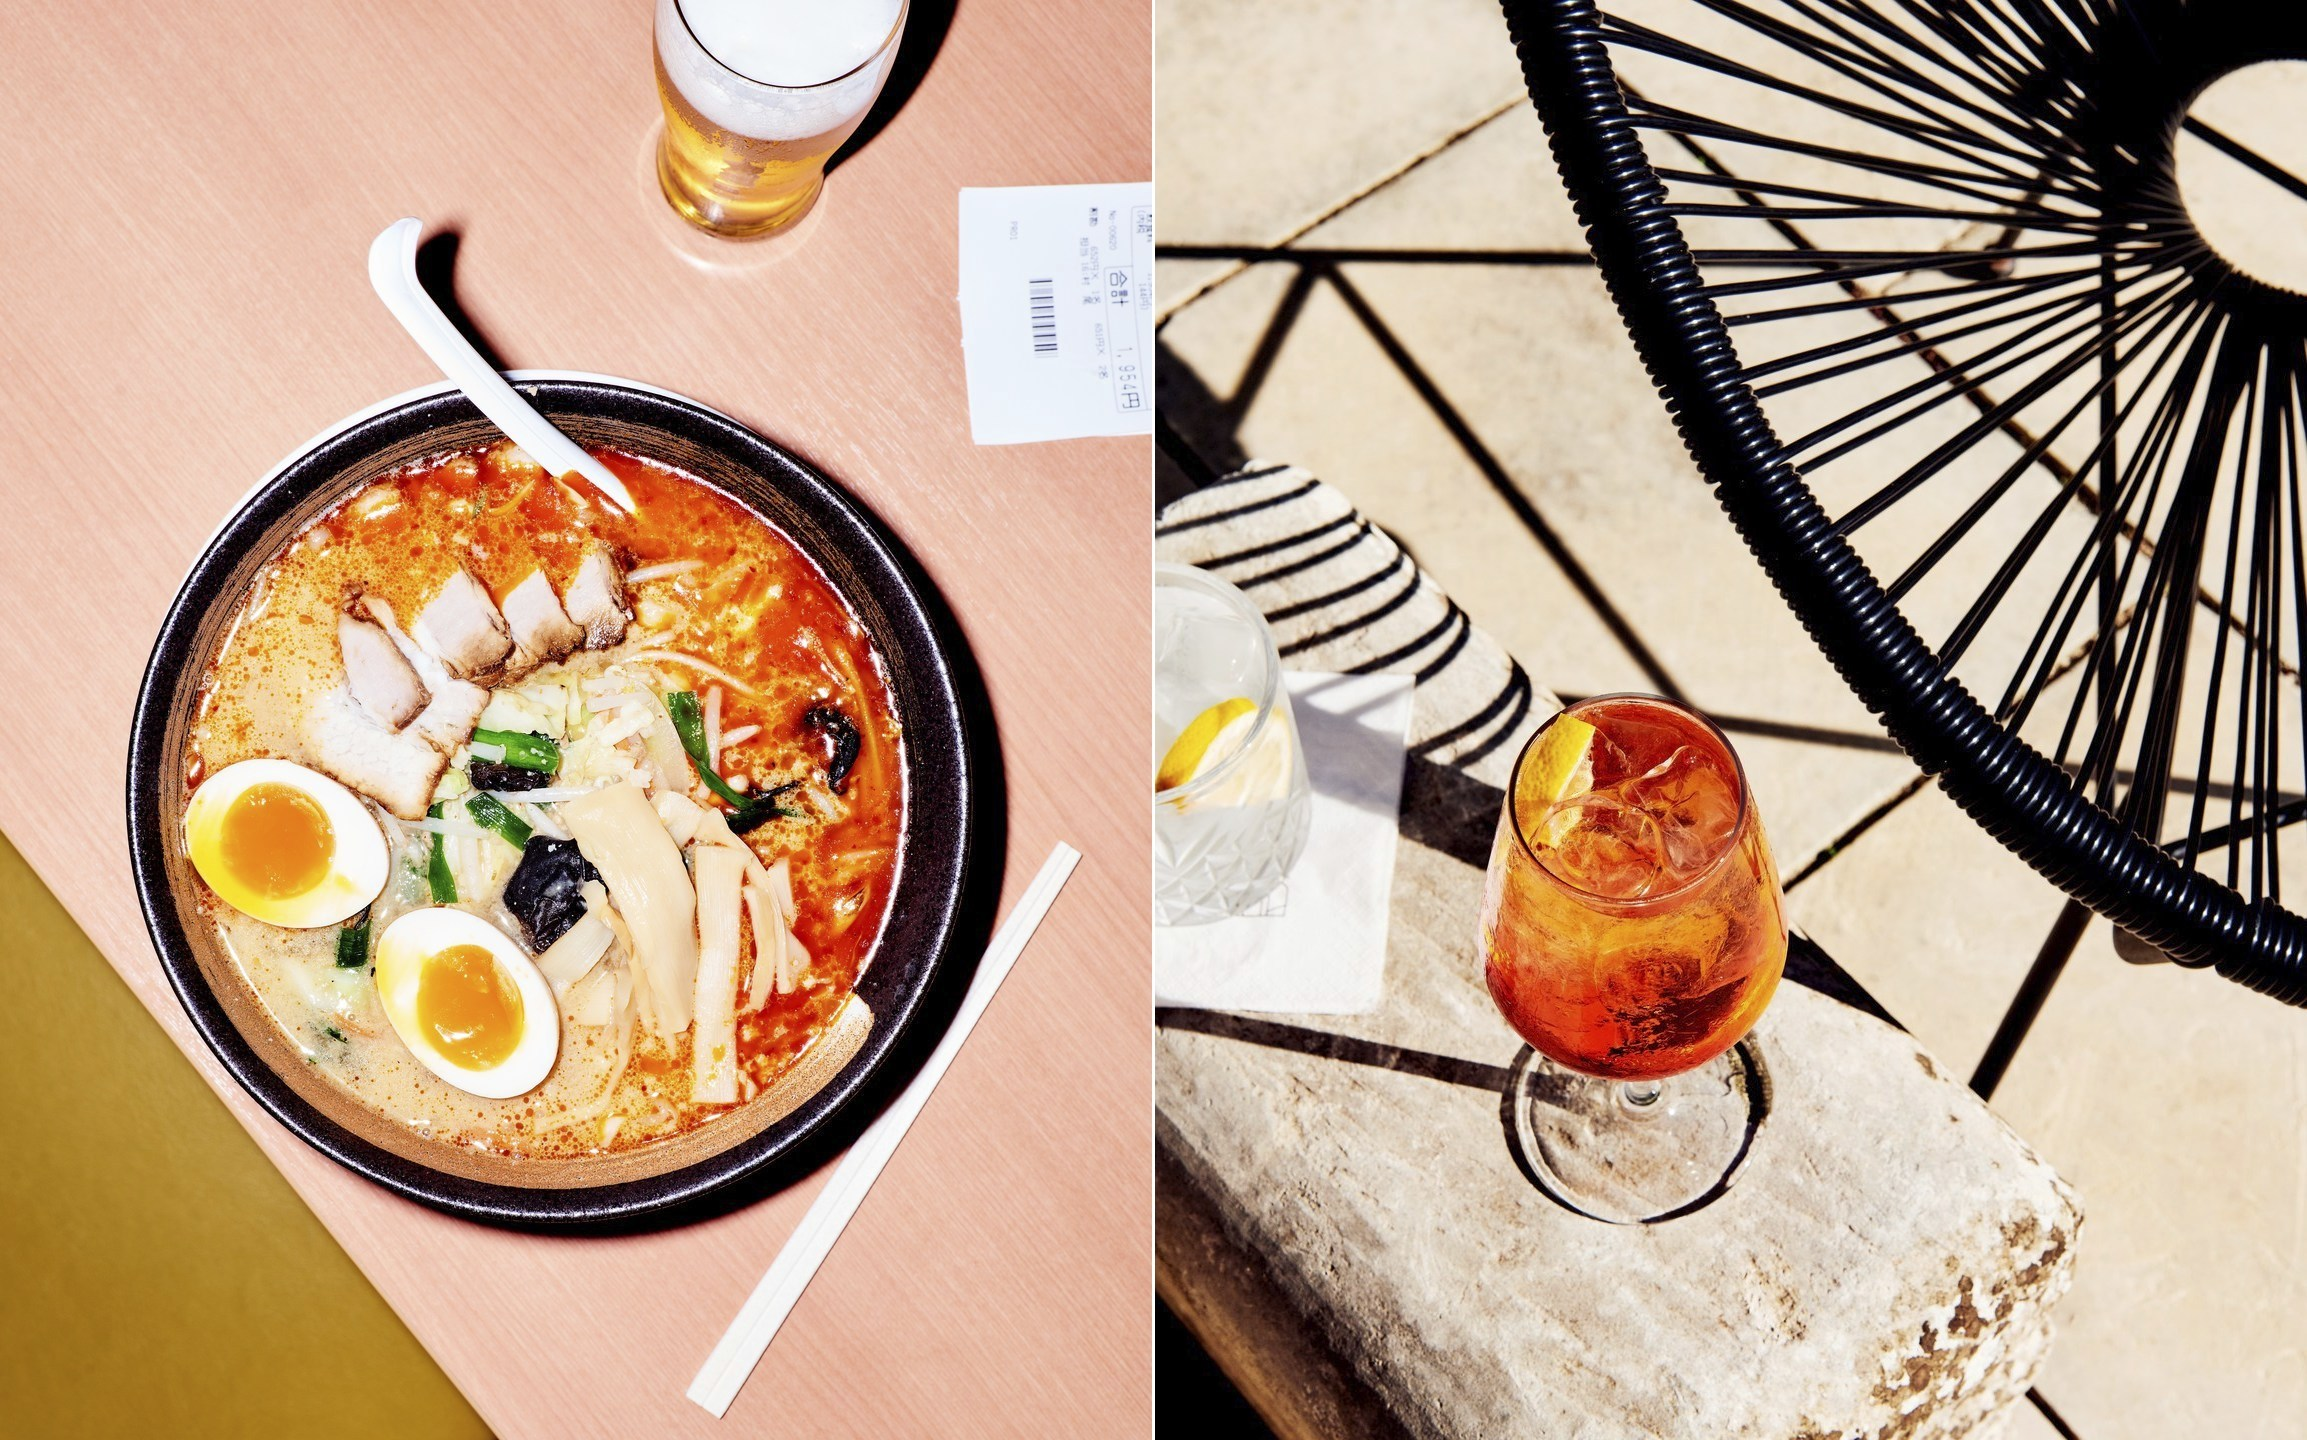 Eat, Drink, Live | Featuring Paola + Murray